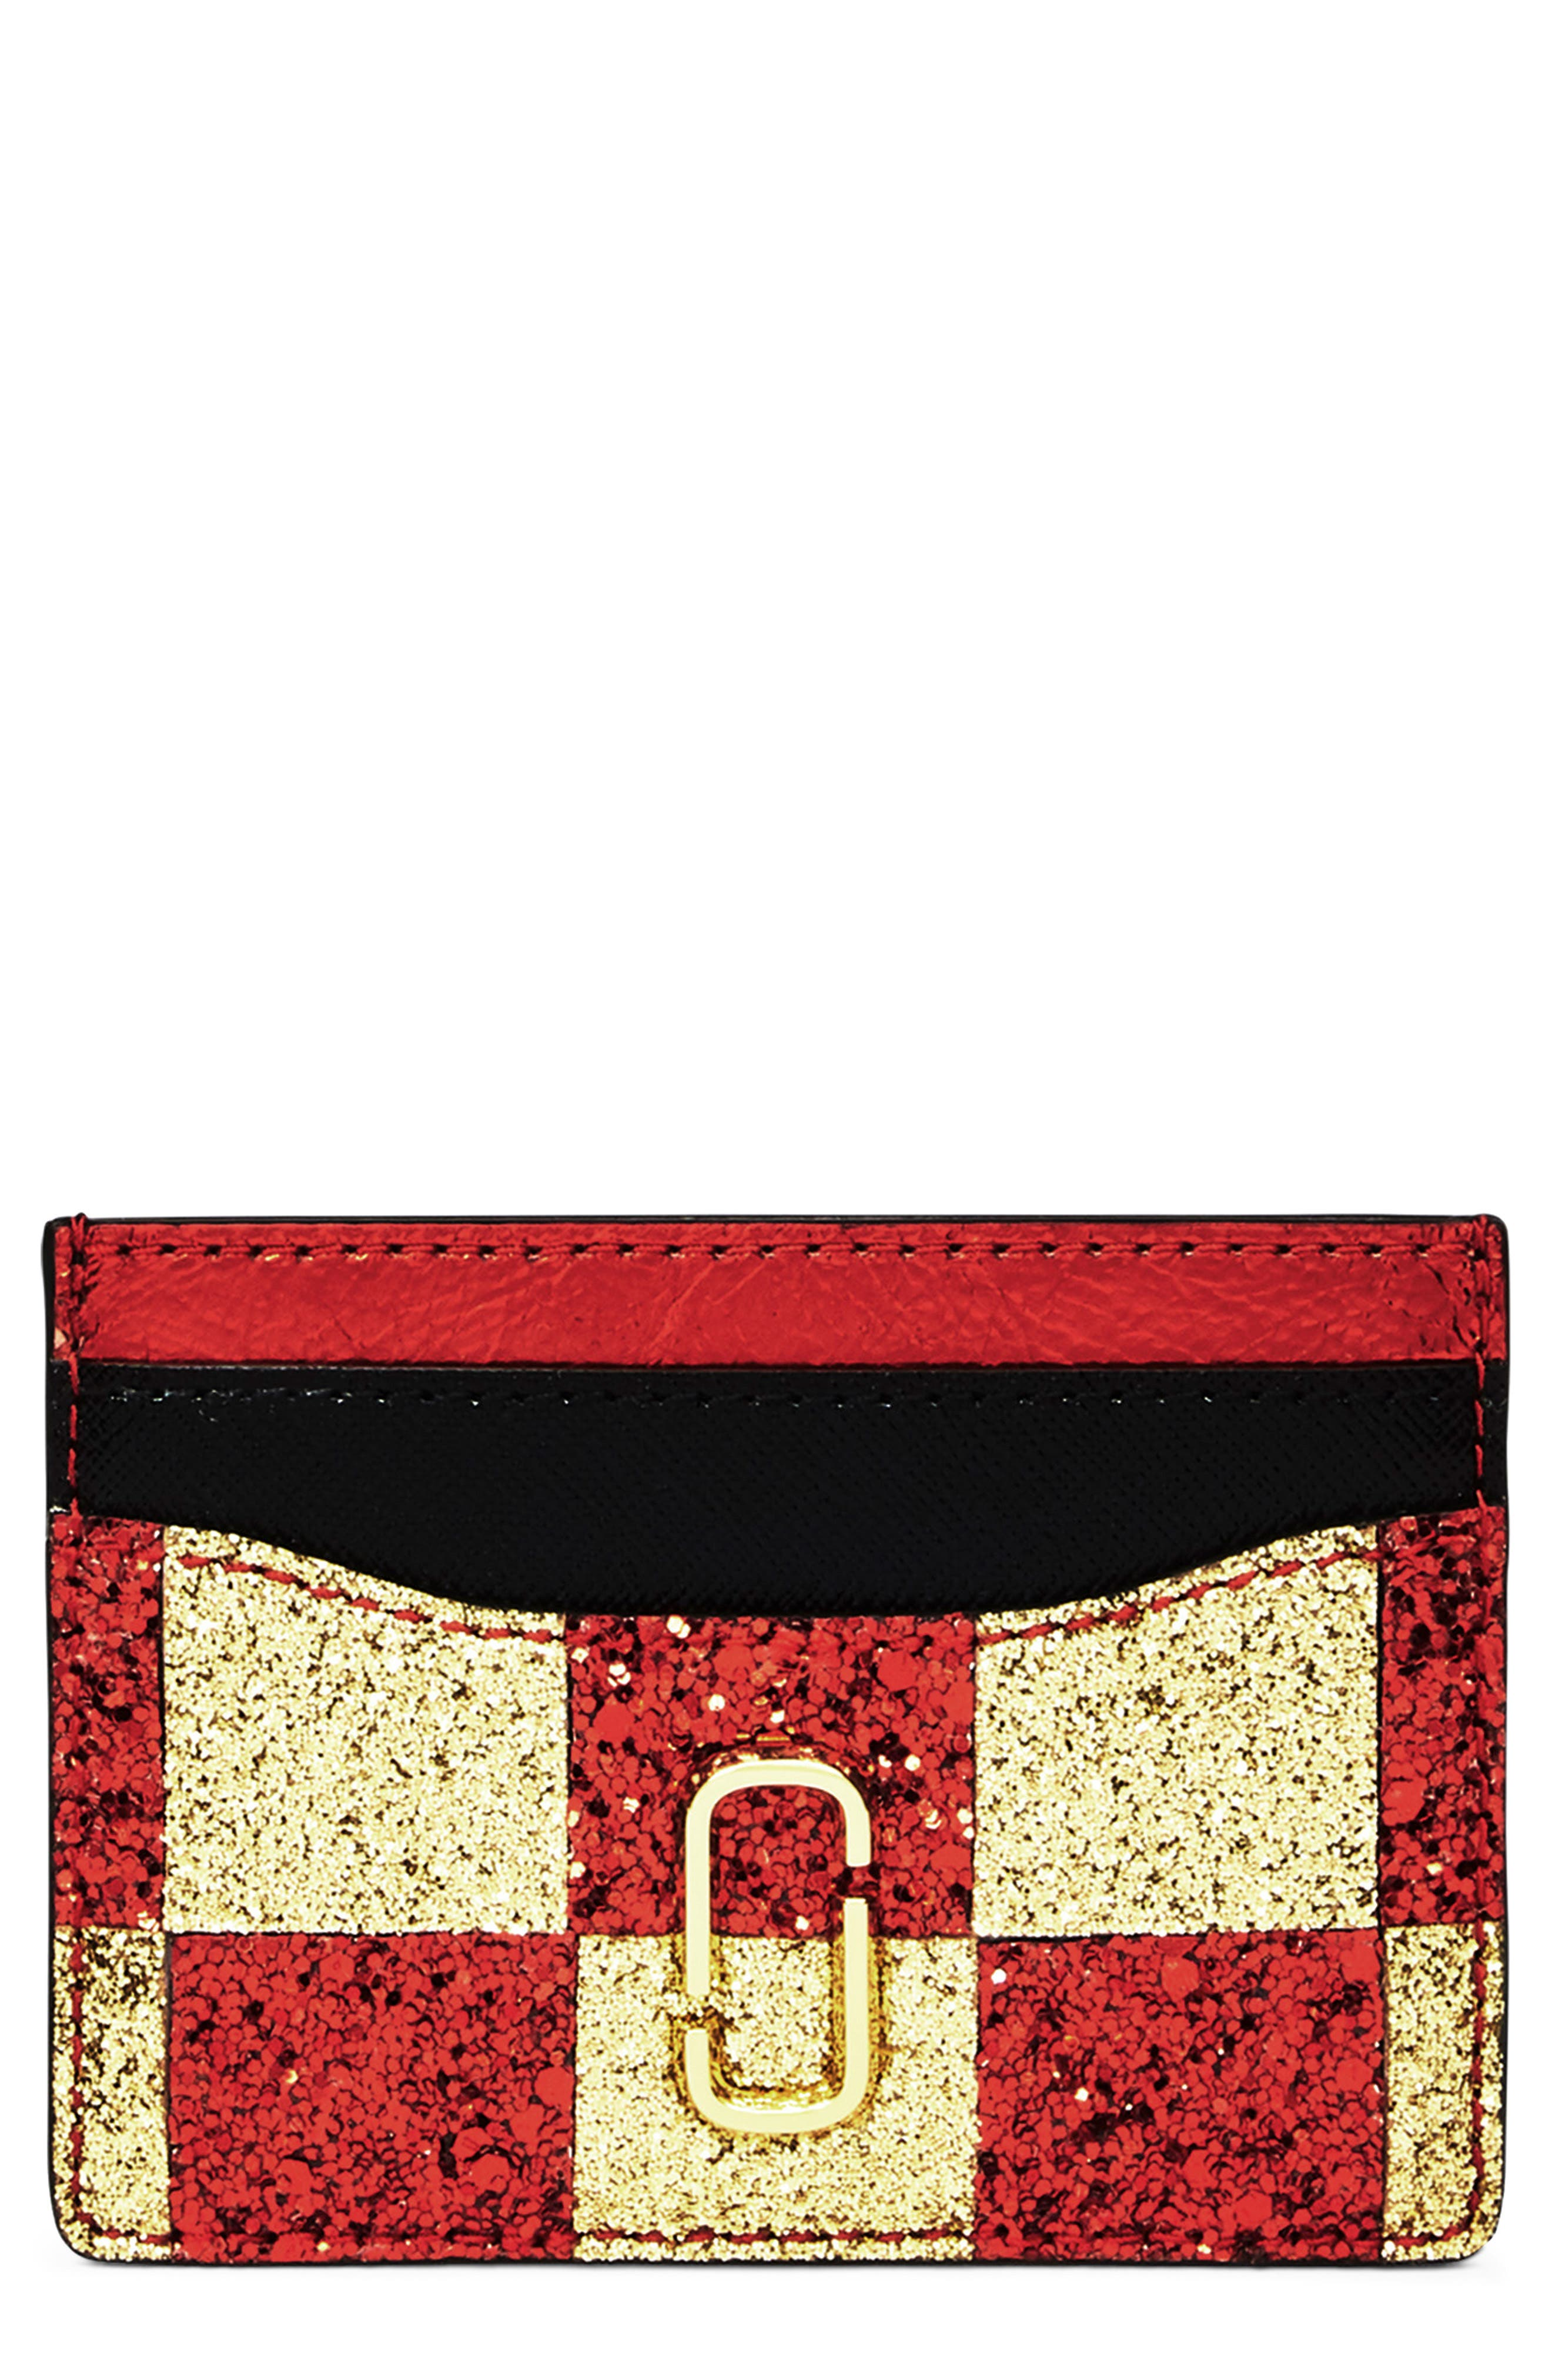 MARC JACOBS, Snapshot Glitter Checkerboard Card Case, Main thumbnail 1, color, GOLD MULTI